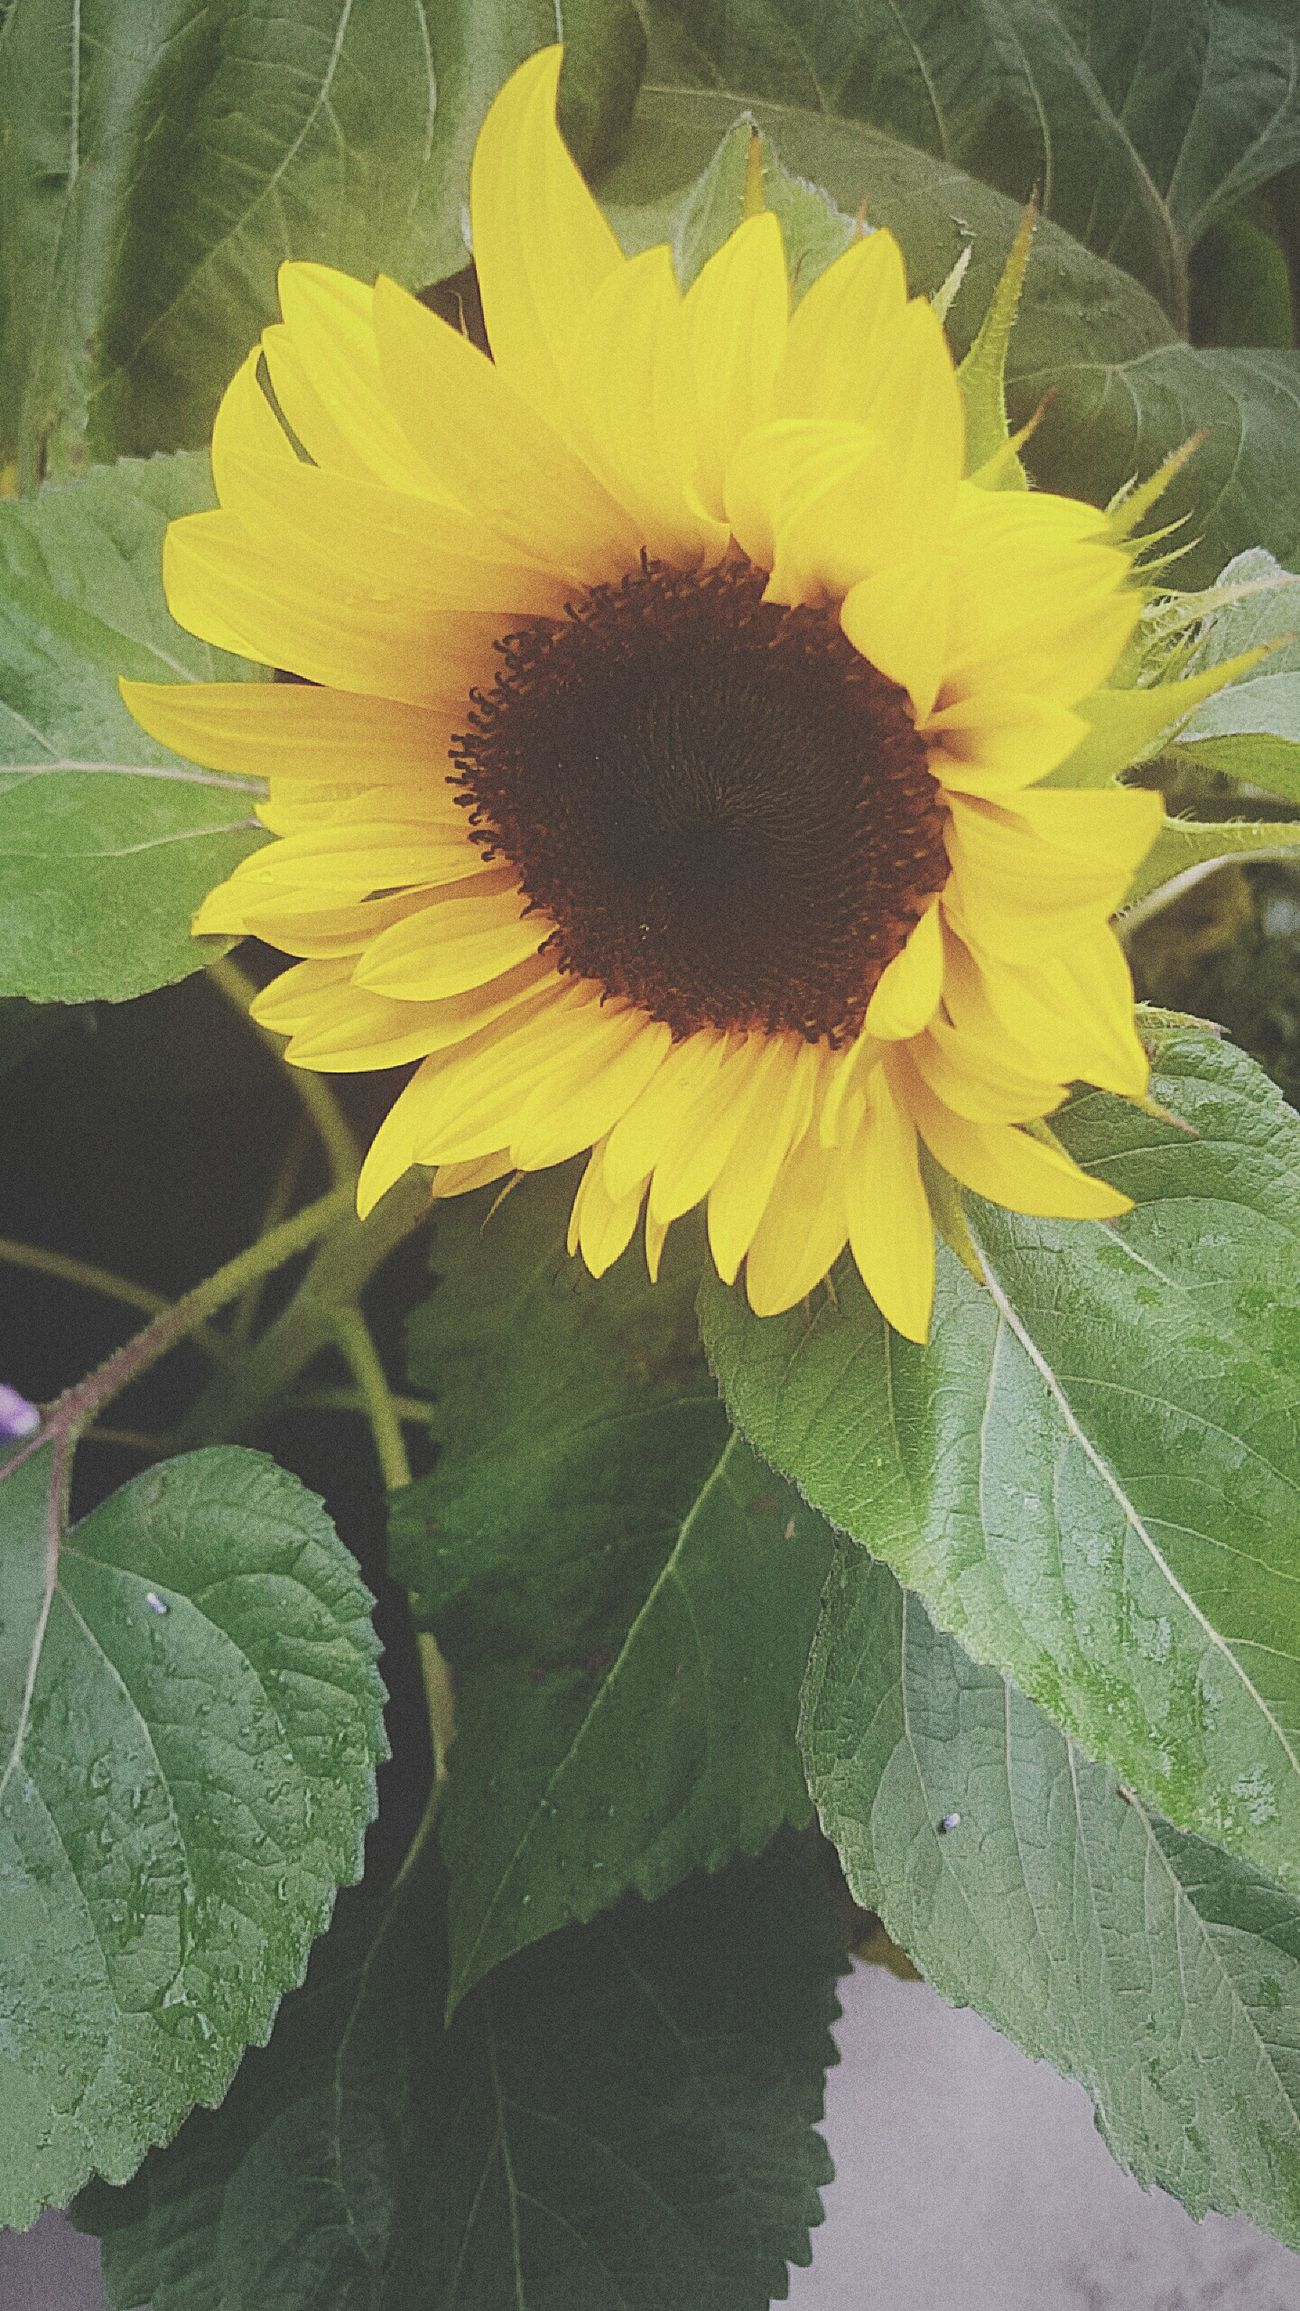 Sunflower Sunflower Art Createdaily Flowers Wildflowers Nature Plants Love Artist Photography Inspire Life Melbourneartists